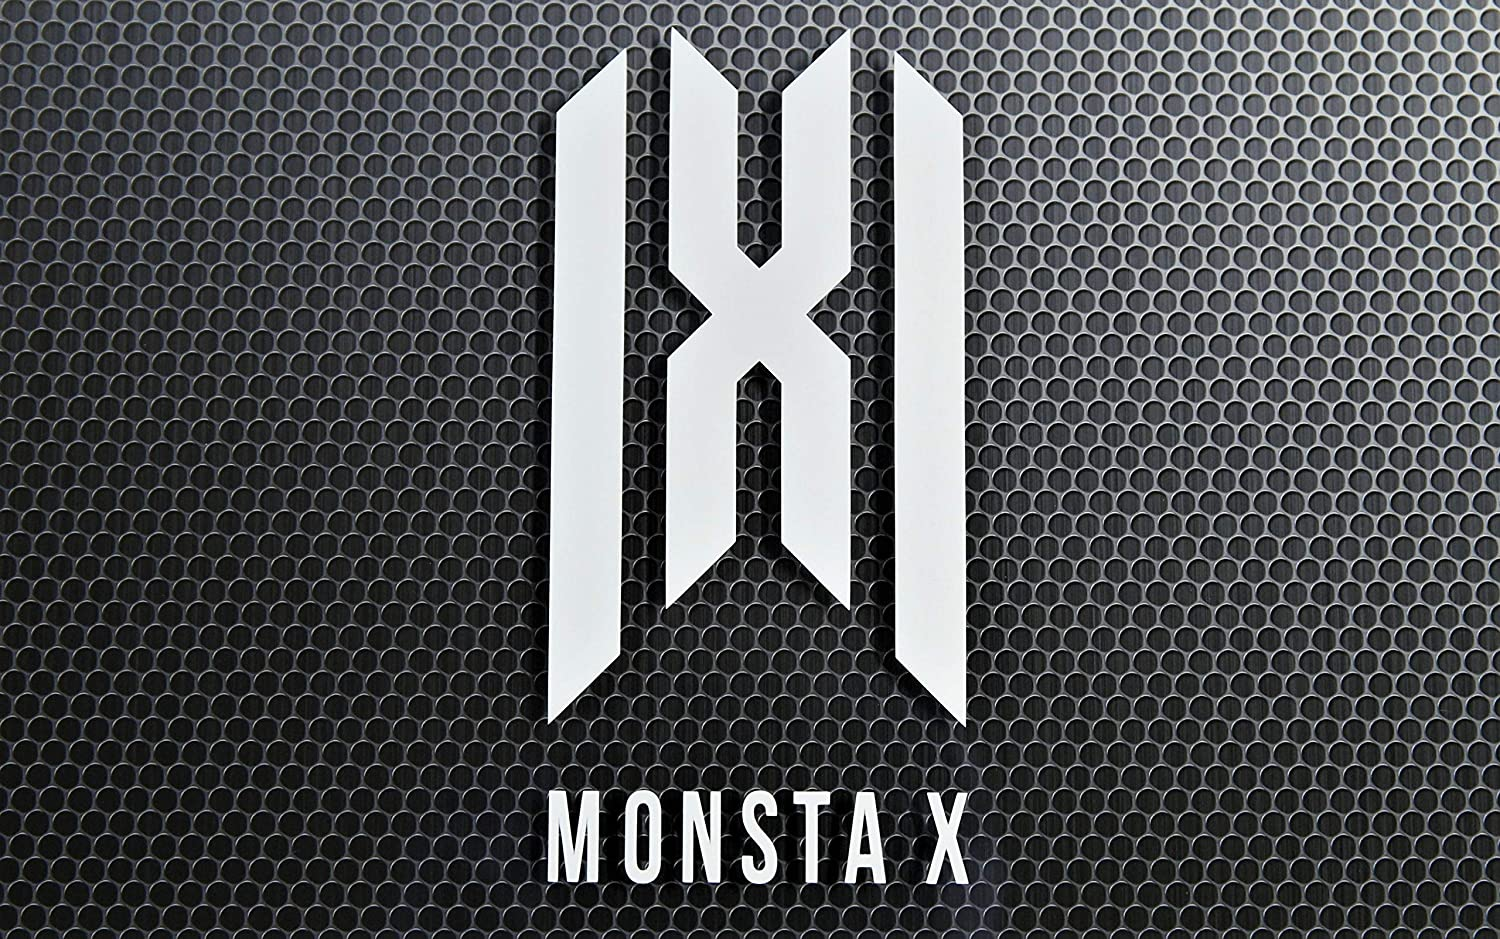 """New""""MONSTA X"""" Logo 6"""" Tall Premium Decal Vinyl Select color from the option menu."""